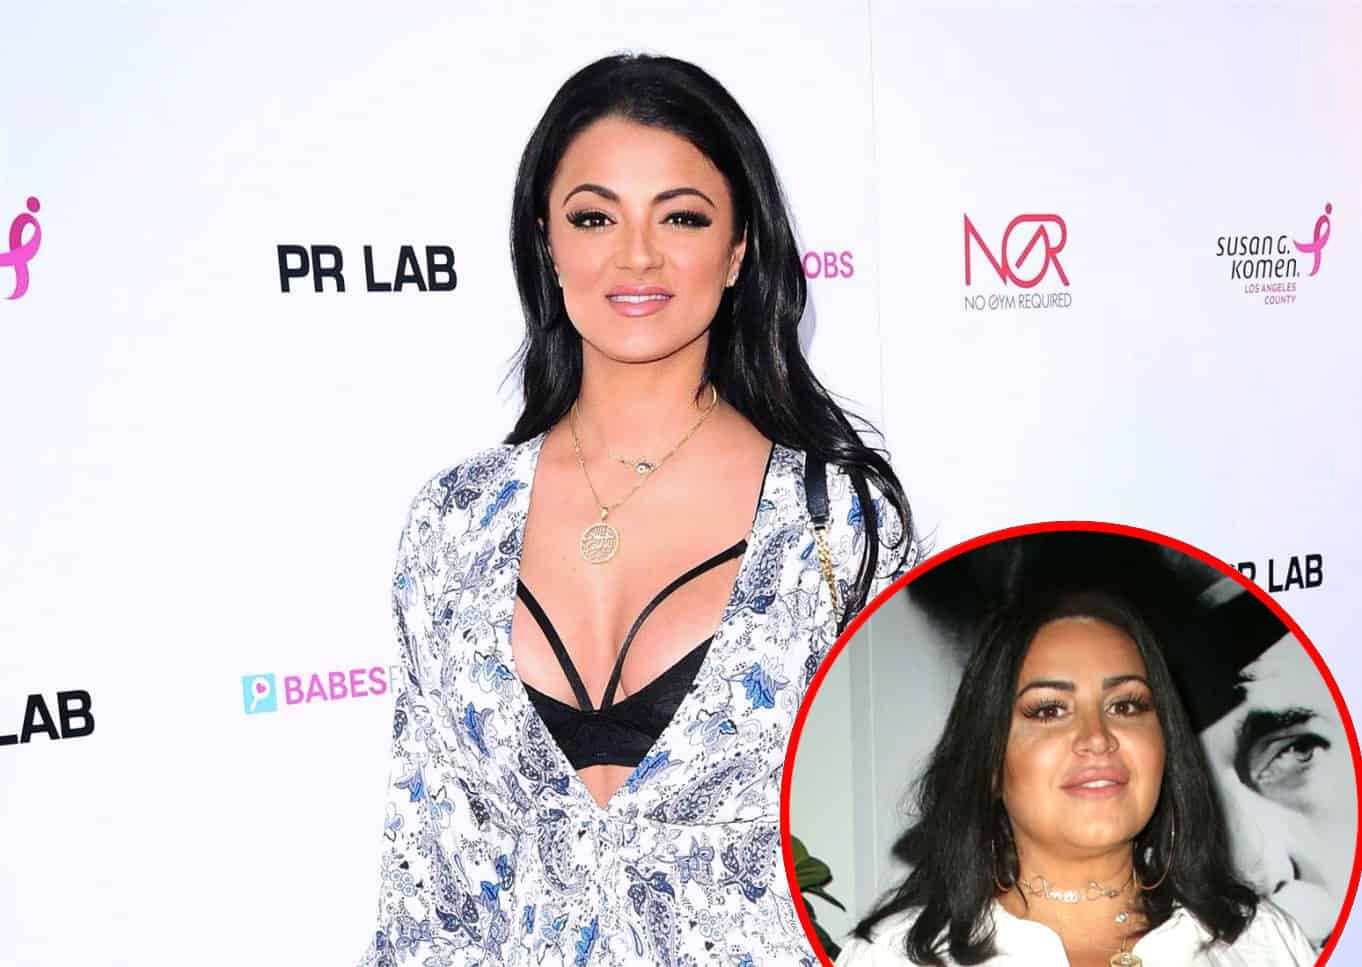 """PHOTOS: Shahs of Sunset's Golnesa 'GG' Gharachedaghi Celebrates Baby Shower With Costars! Plus She Explains Why Mercedes 'MJ' Javid is Finally Getting Her """"Karma"""""""